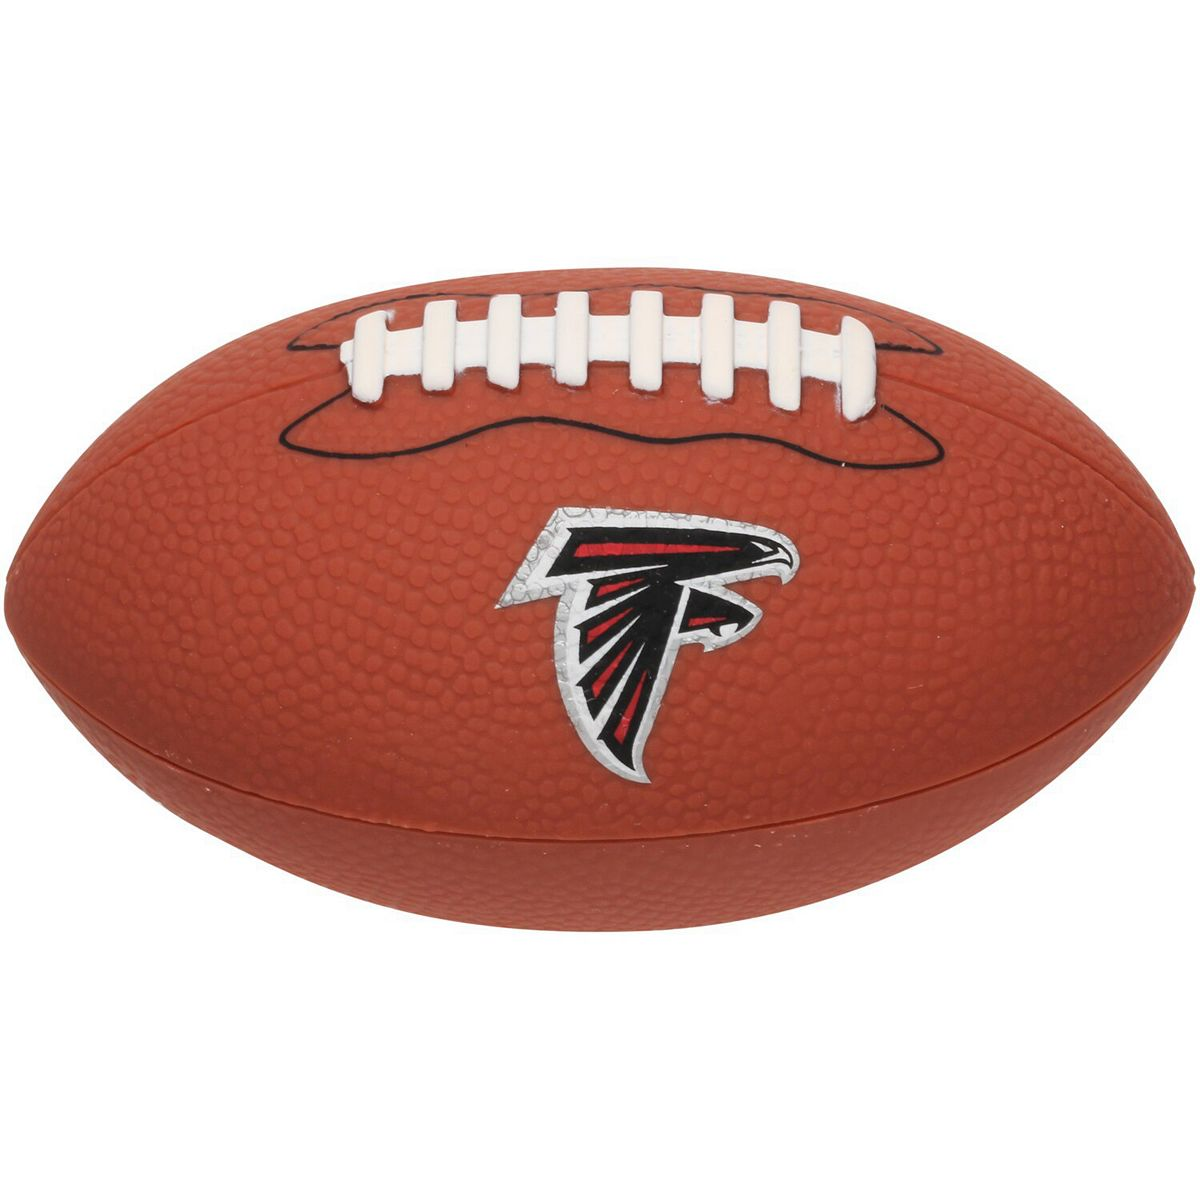 Atlanta Falcons Football Cell Phone Charger fPHMv